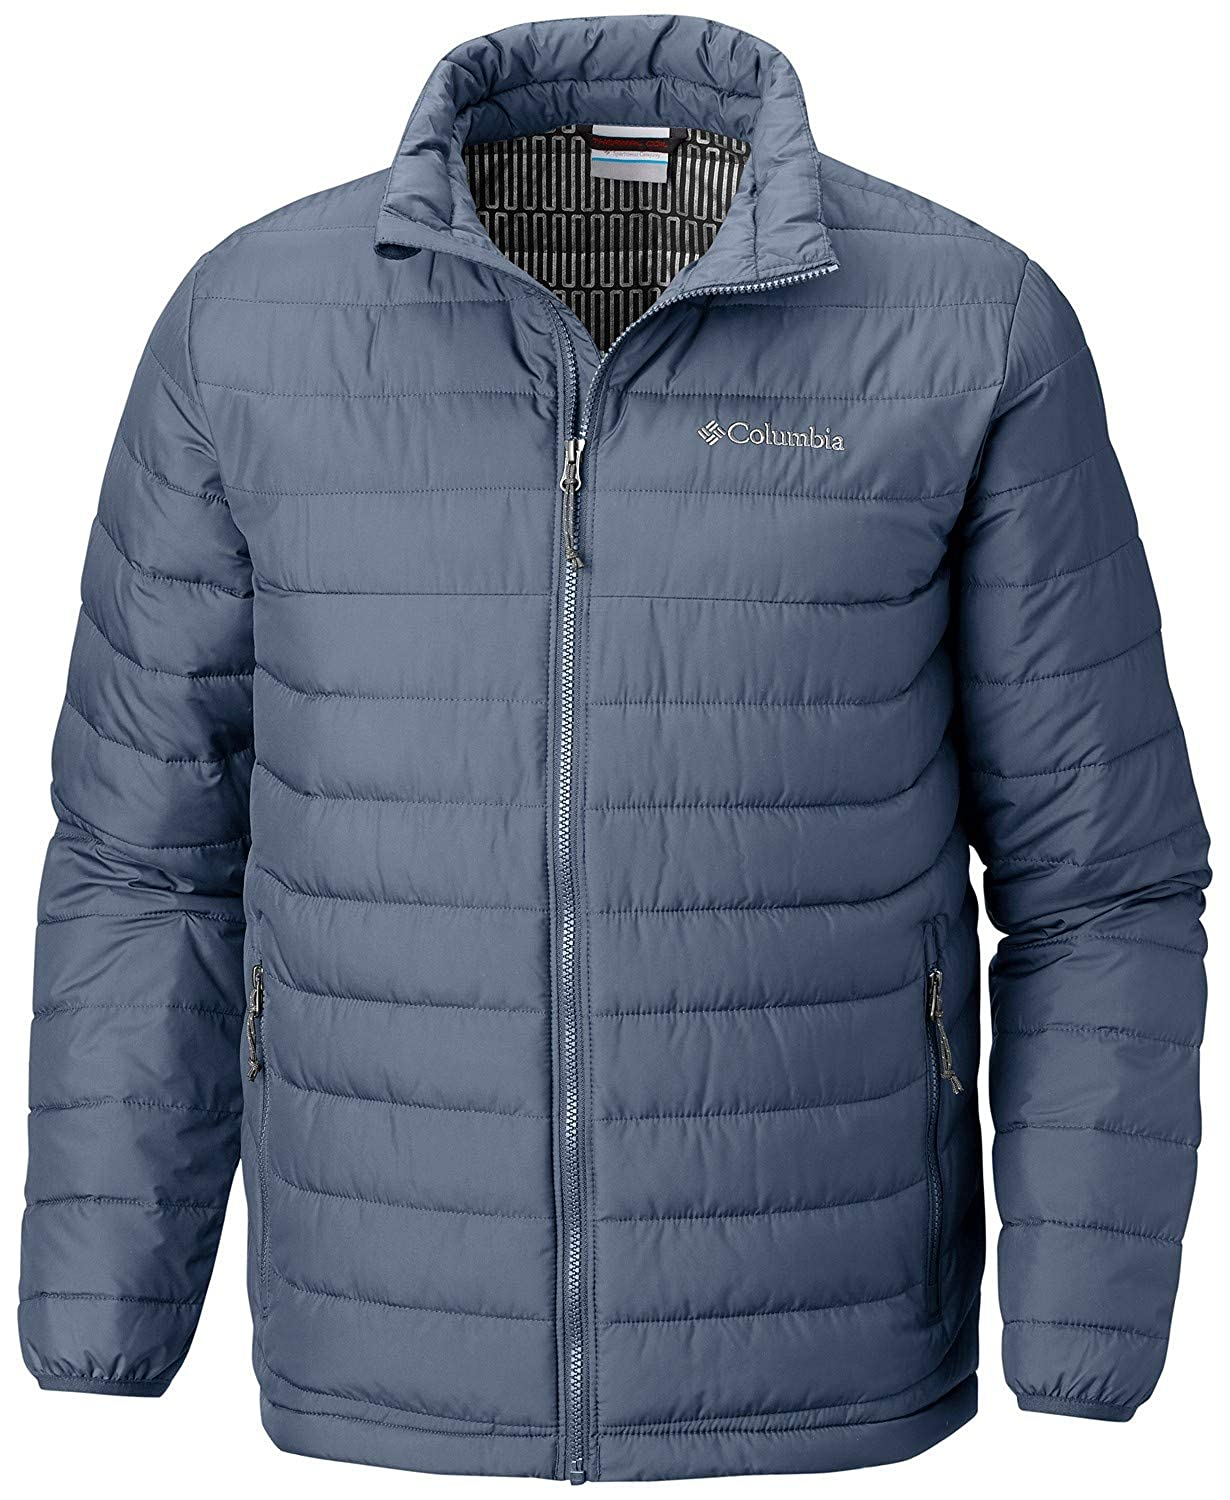 92d9d0cd2a90 Columbia Men's Oyanta Trail Puffer Jacket at Amazon Men's Clothing store: